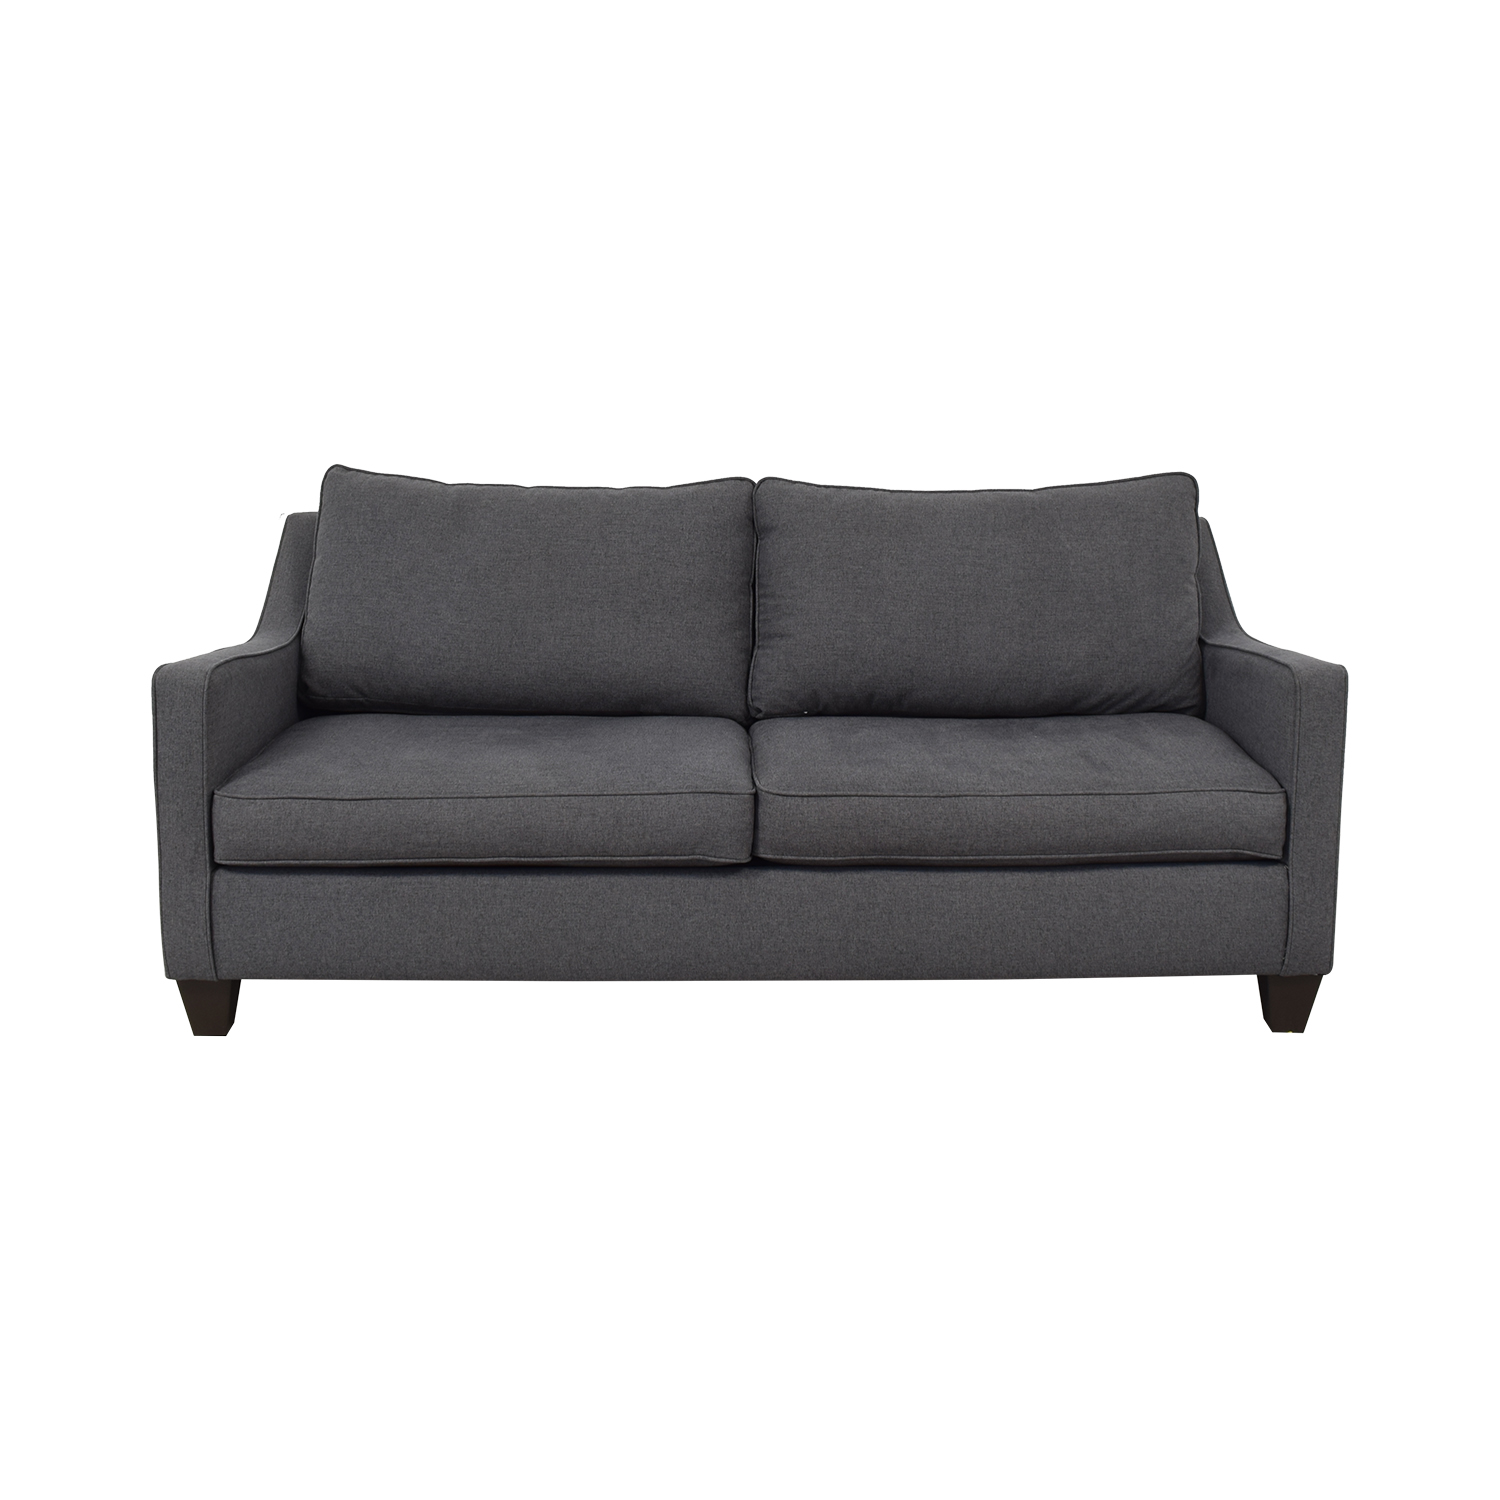 buy Raymour & Flanigan Raymour & Flanigan Two Cushion Sofa online